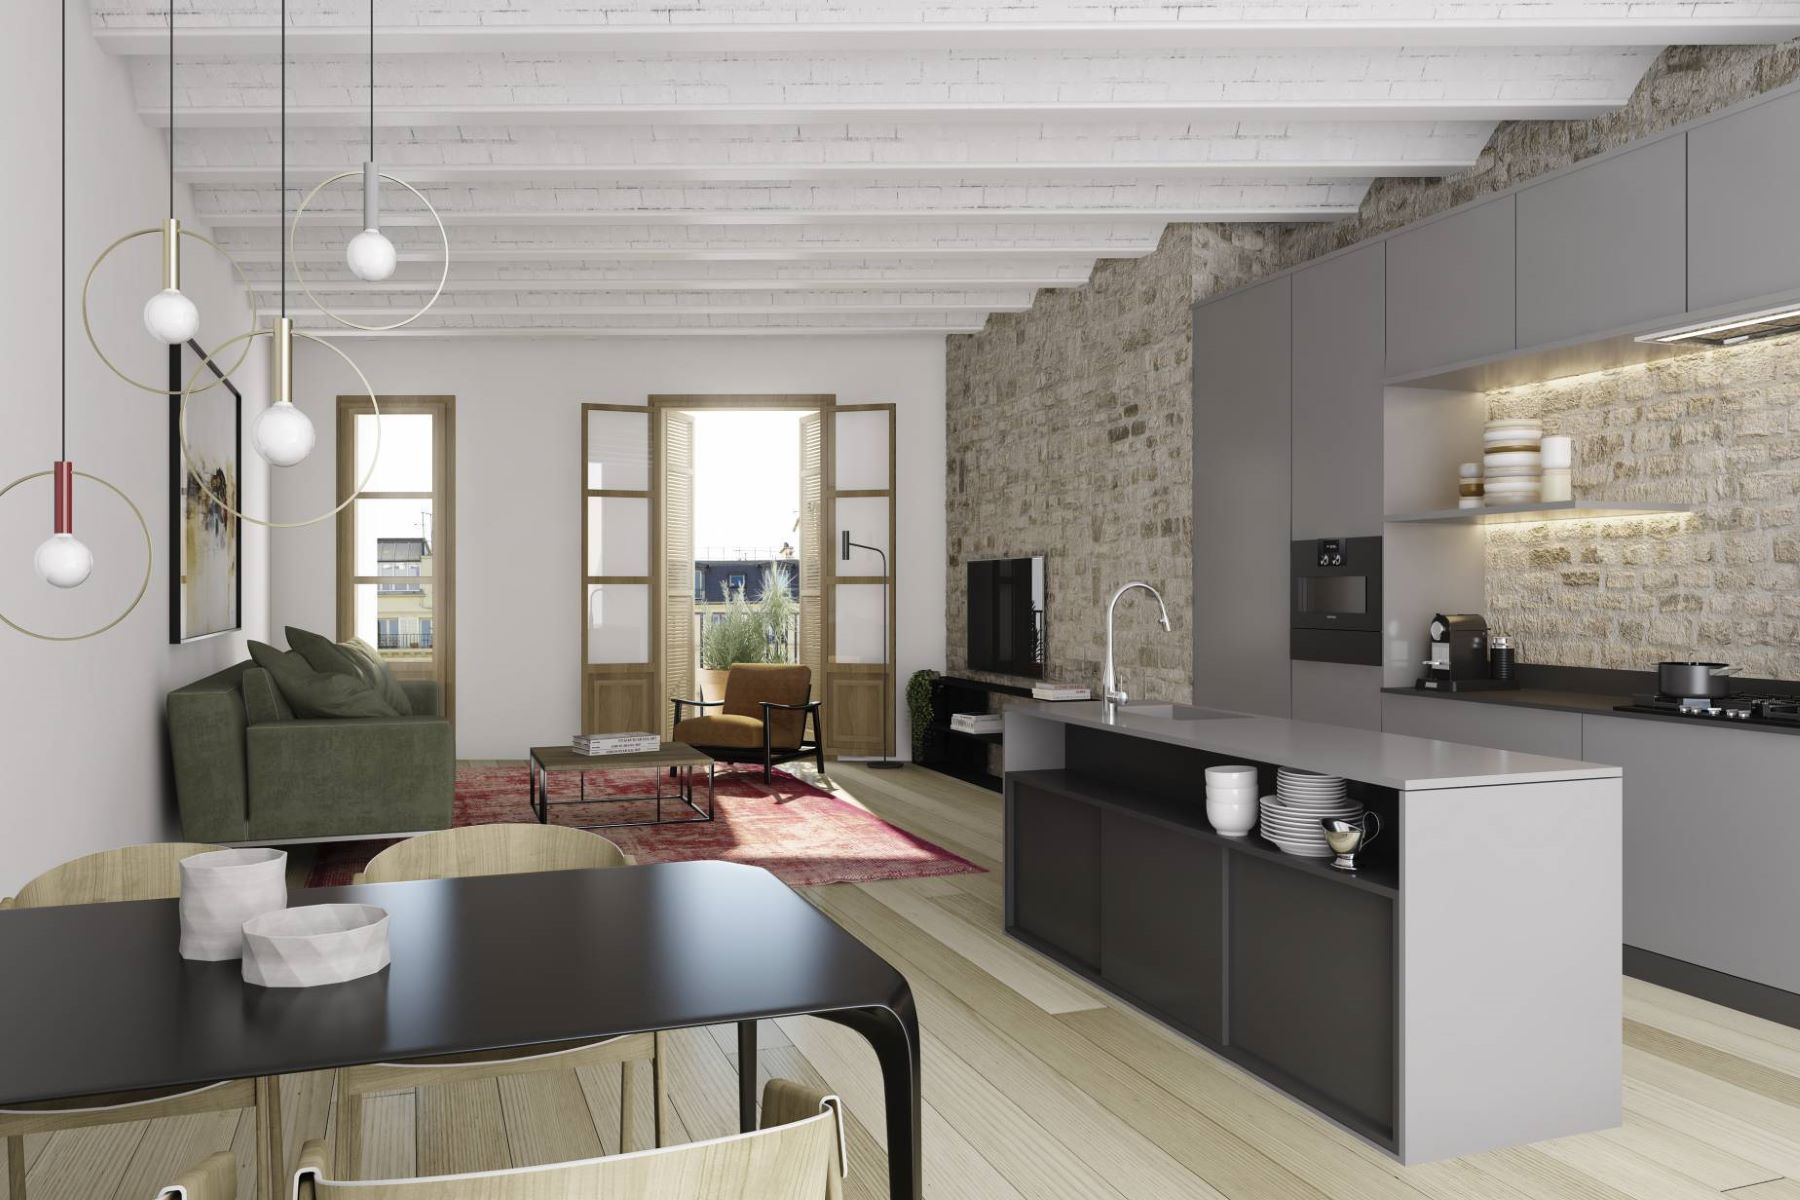 Apartment for Sale at Apartment in Restored Unique Building in the Gothic Quarter Barcelona City, Barcelona, 08002 Spain